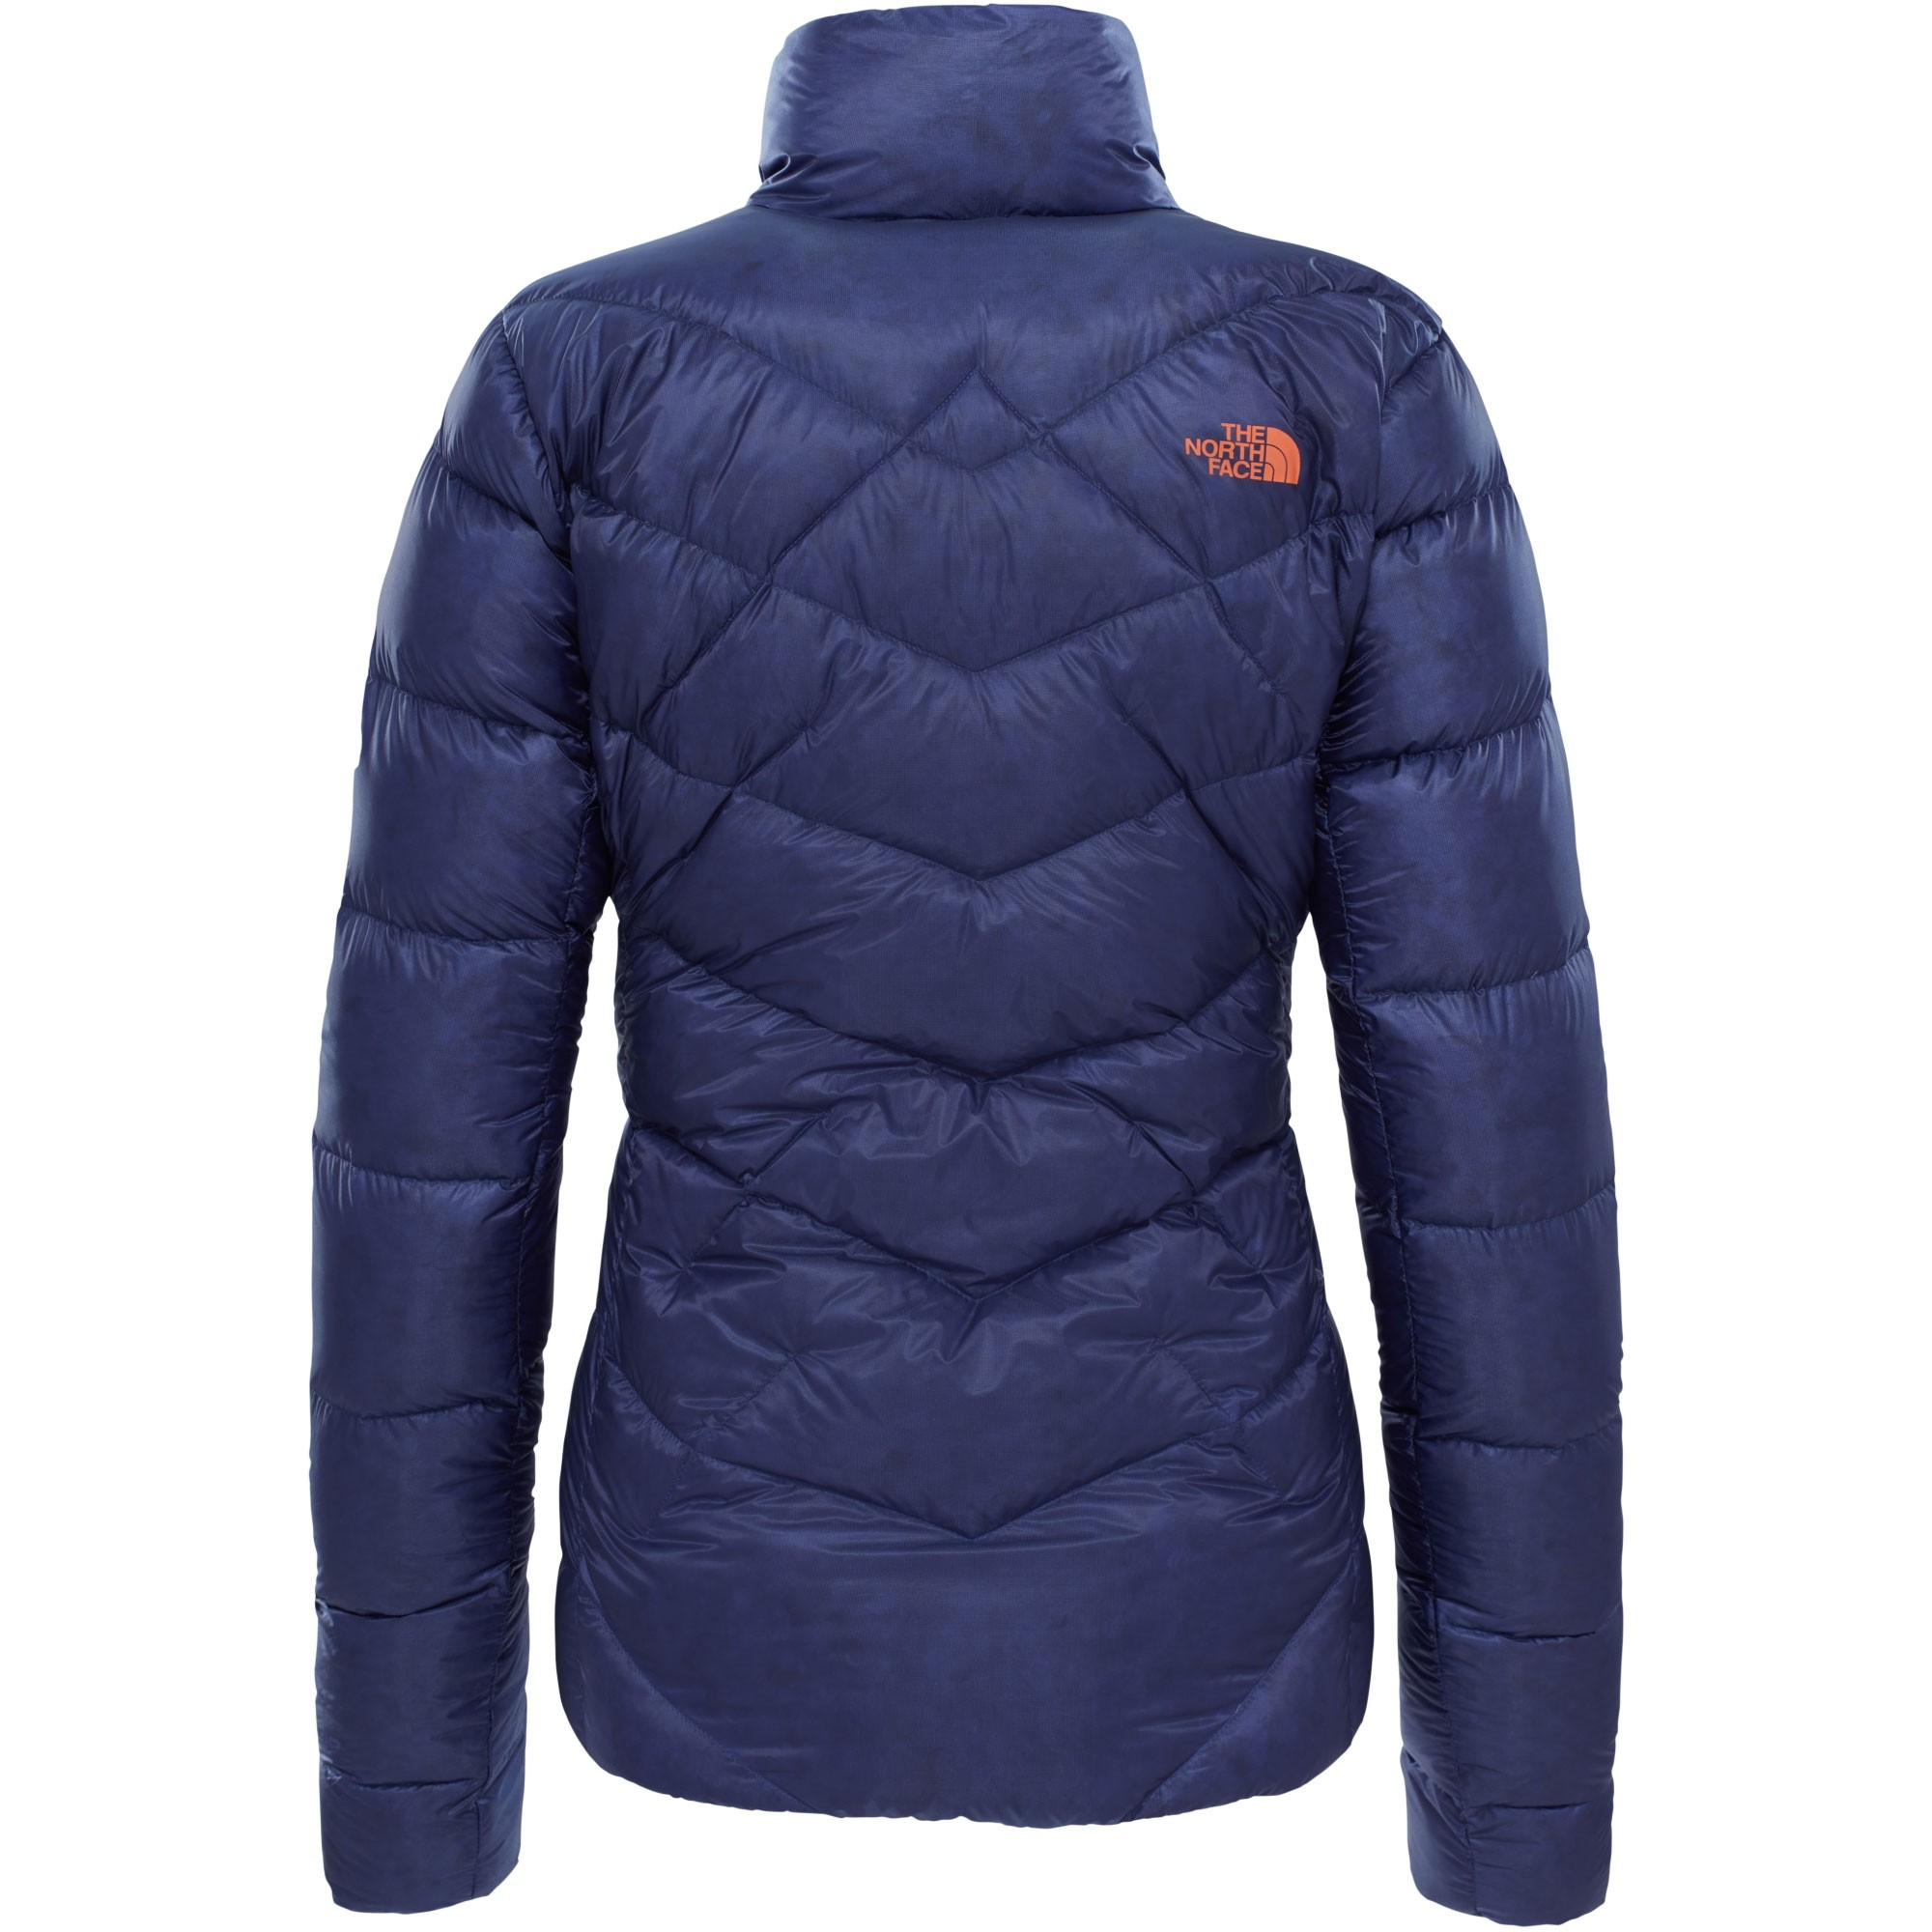 The-North-Face-Womens-Supercinco-Down-Jacket-Bright-Navy-1-